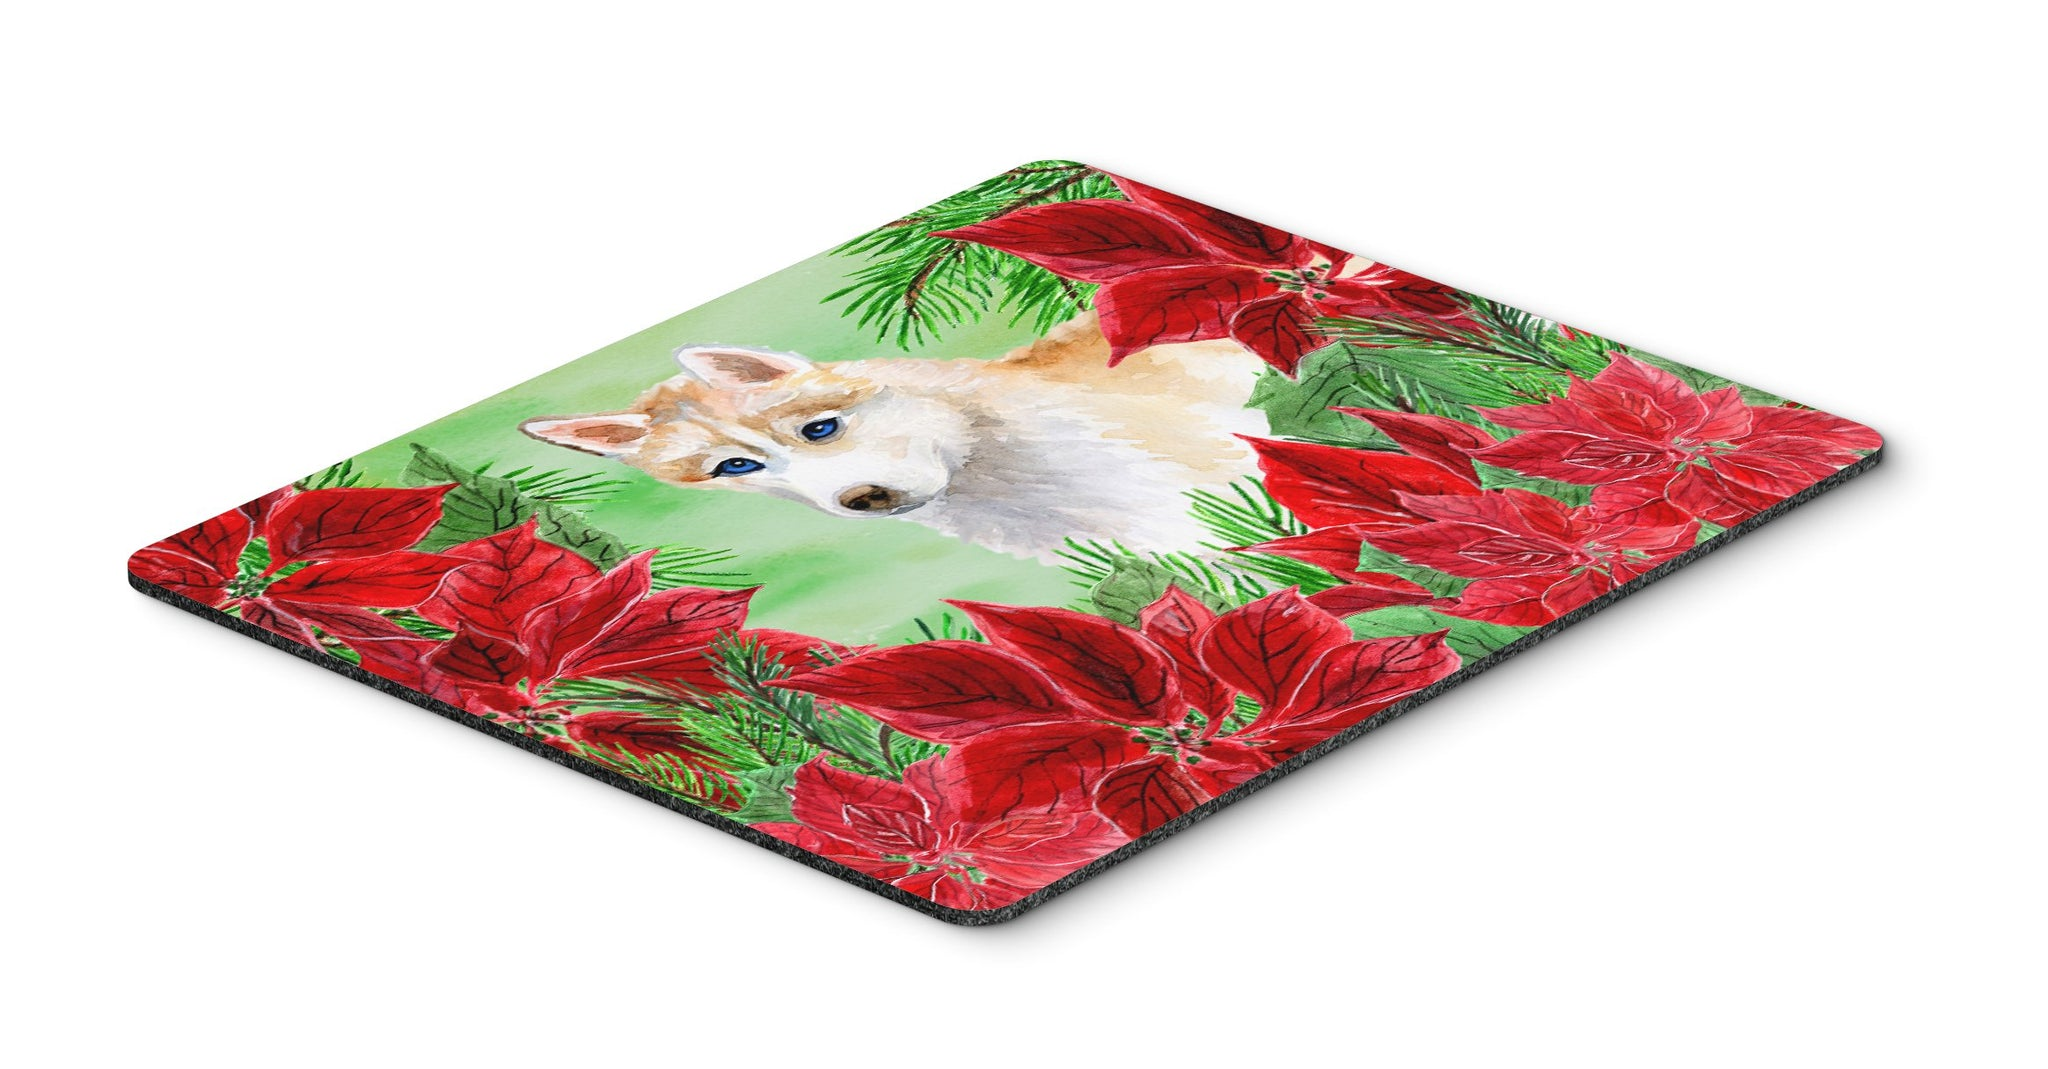 Buy This Siberian Husky Poinsettas Mouse Pad, Hot Pad Or